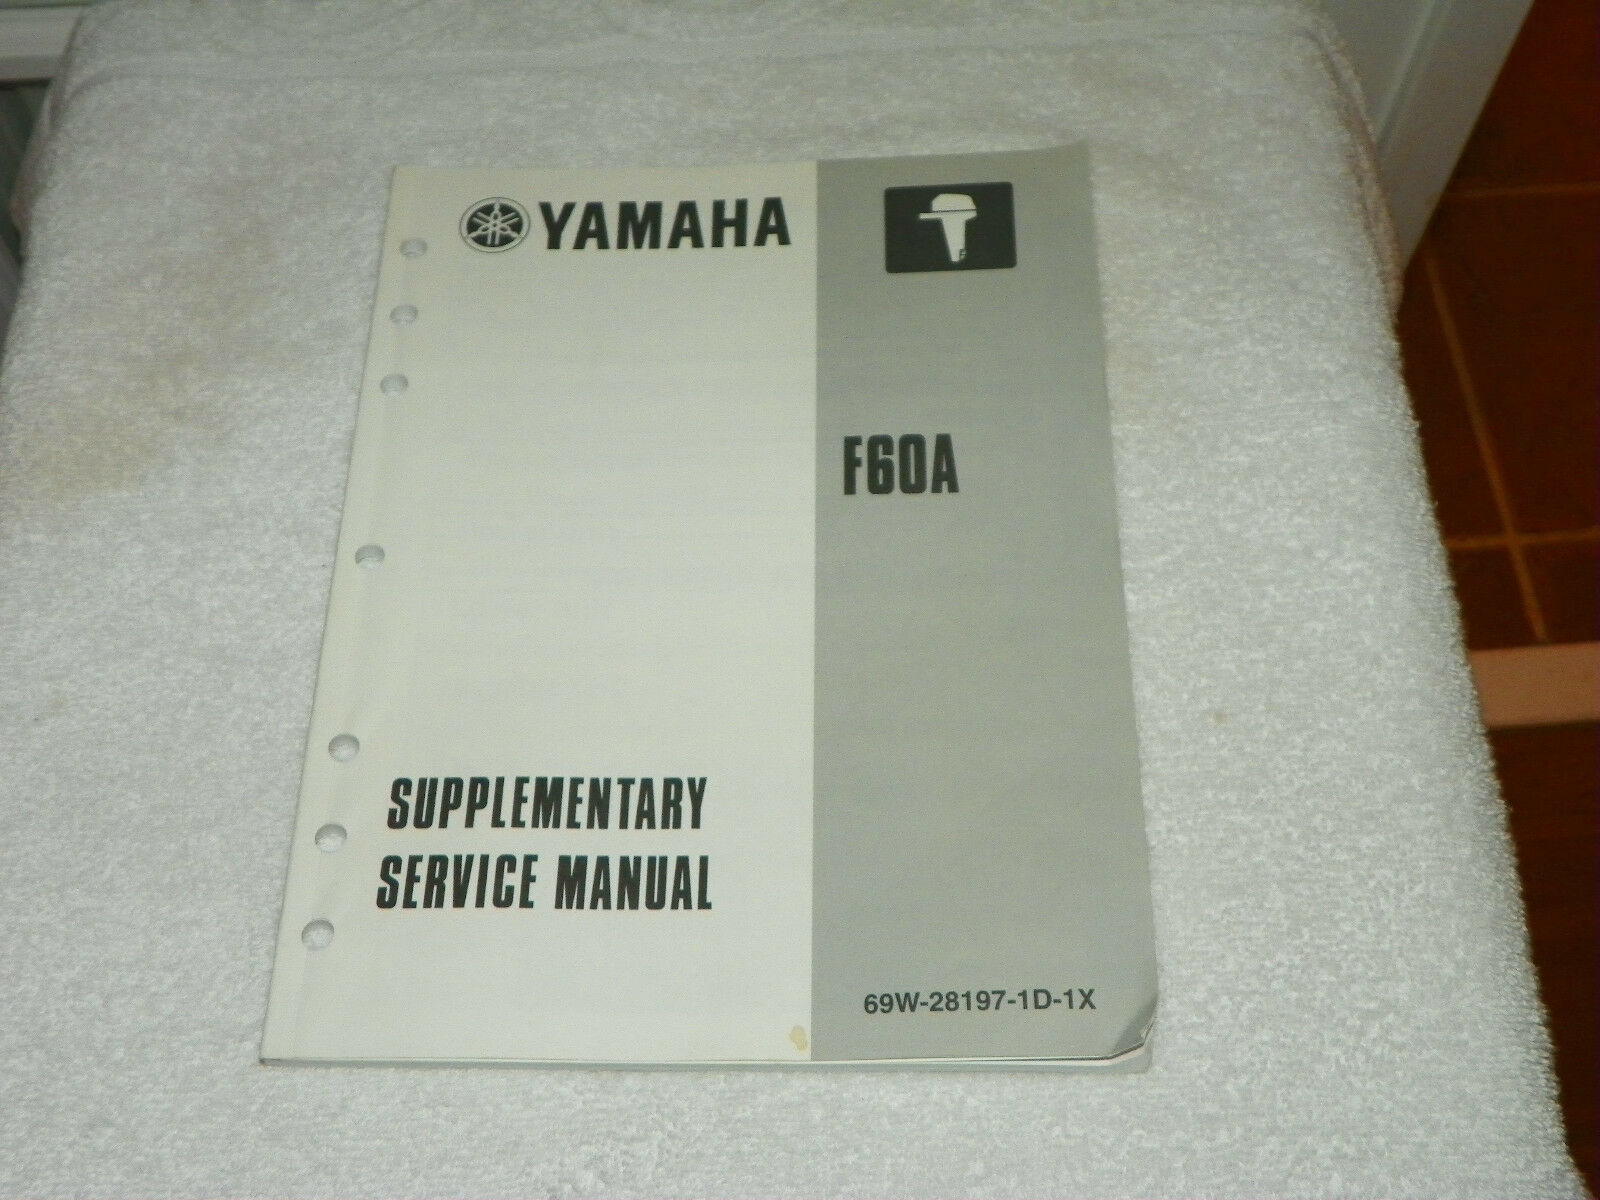 Yamaha F60A Outboard Supplementary Service Repair Manual LIT-18616-02-40 1  of 4Only 1 available ...